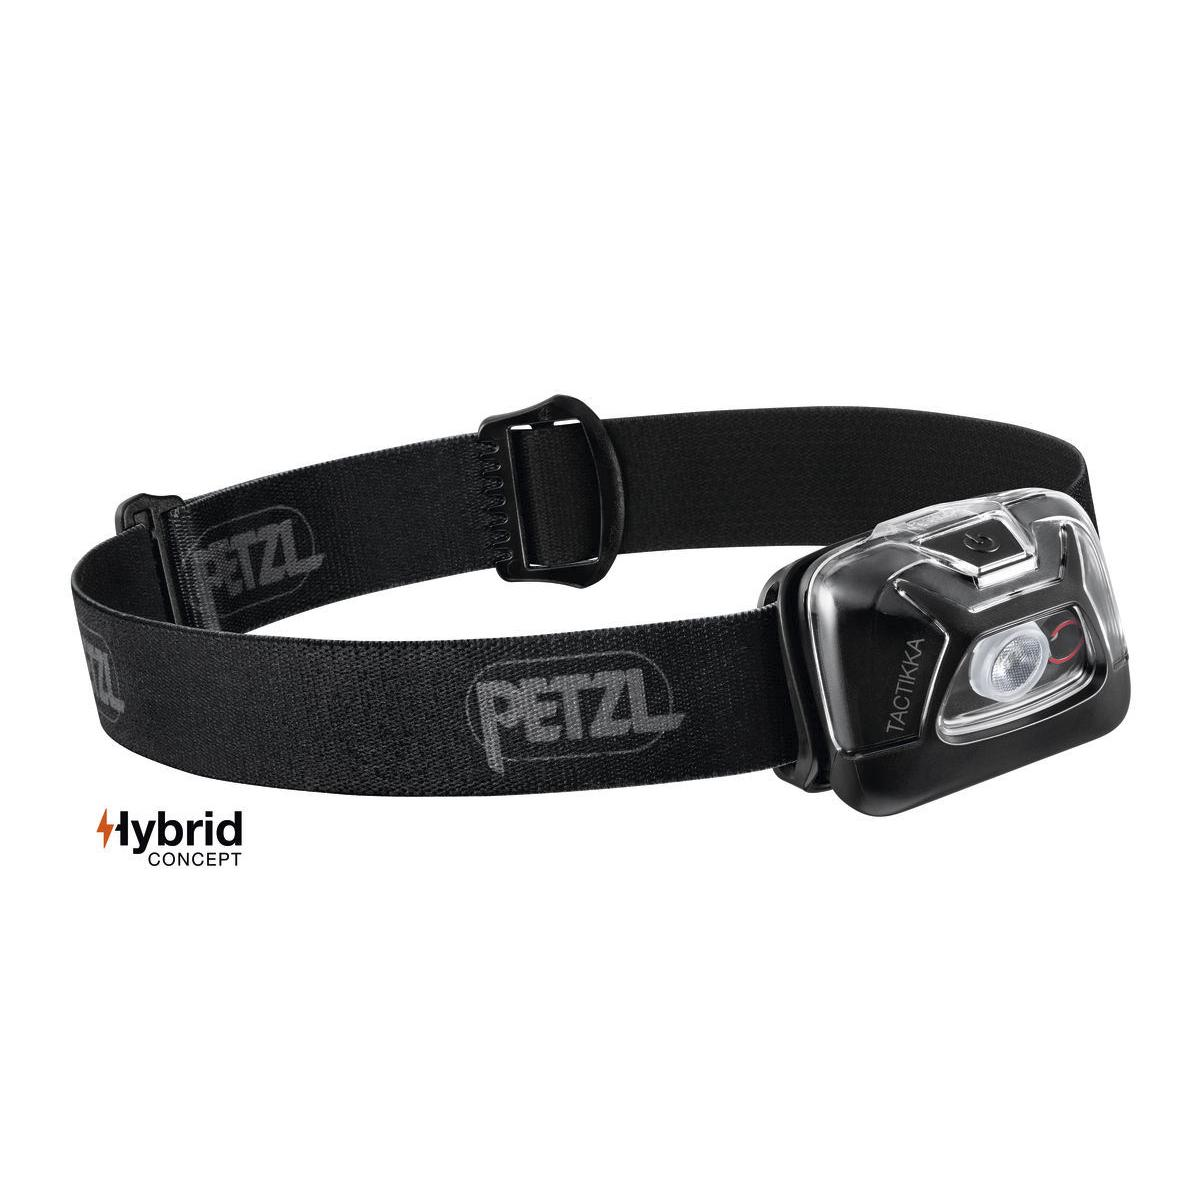 Petzl Tactikka 300 Lumens Headlamp